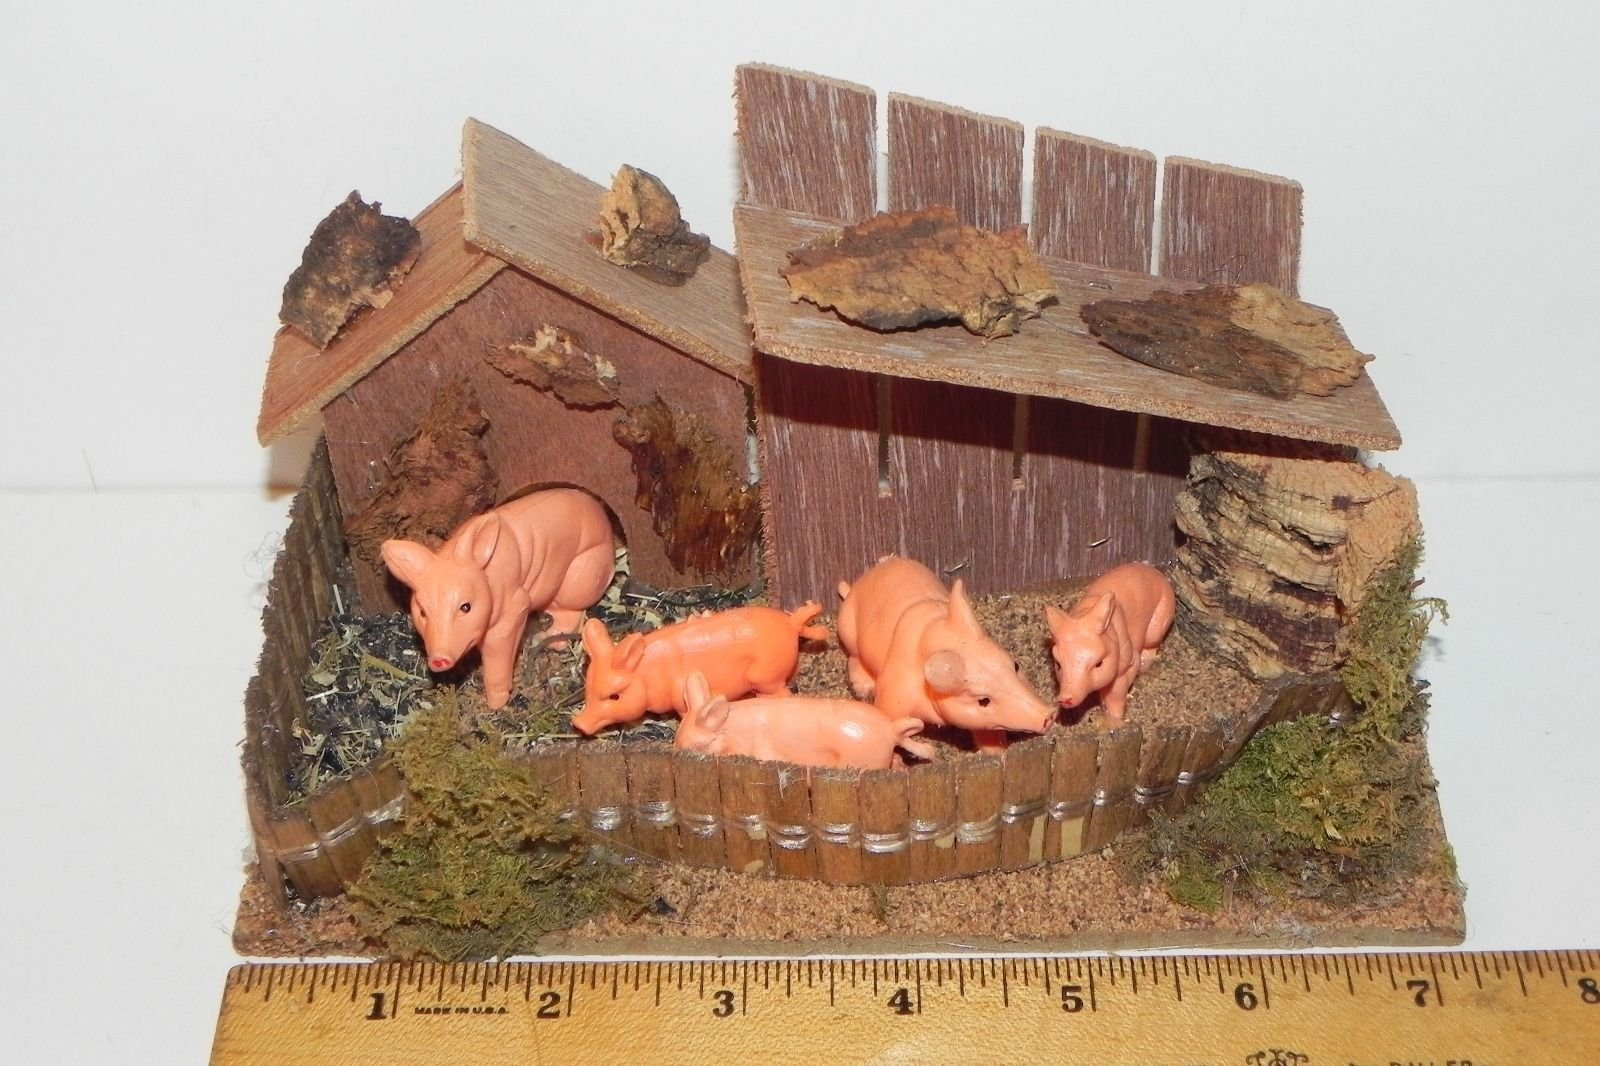 Collectible Figurines Italian Animals Nativity Scene Accessory Farm Scene - USA_Mall